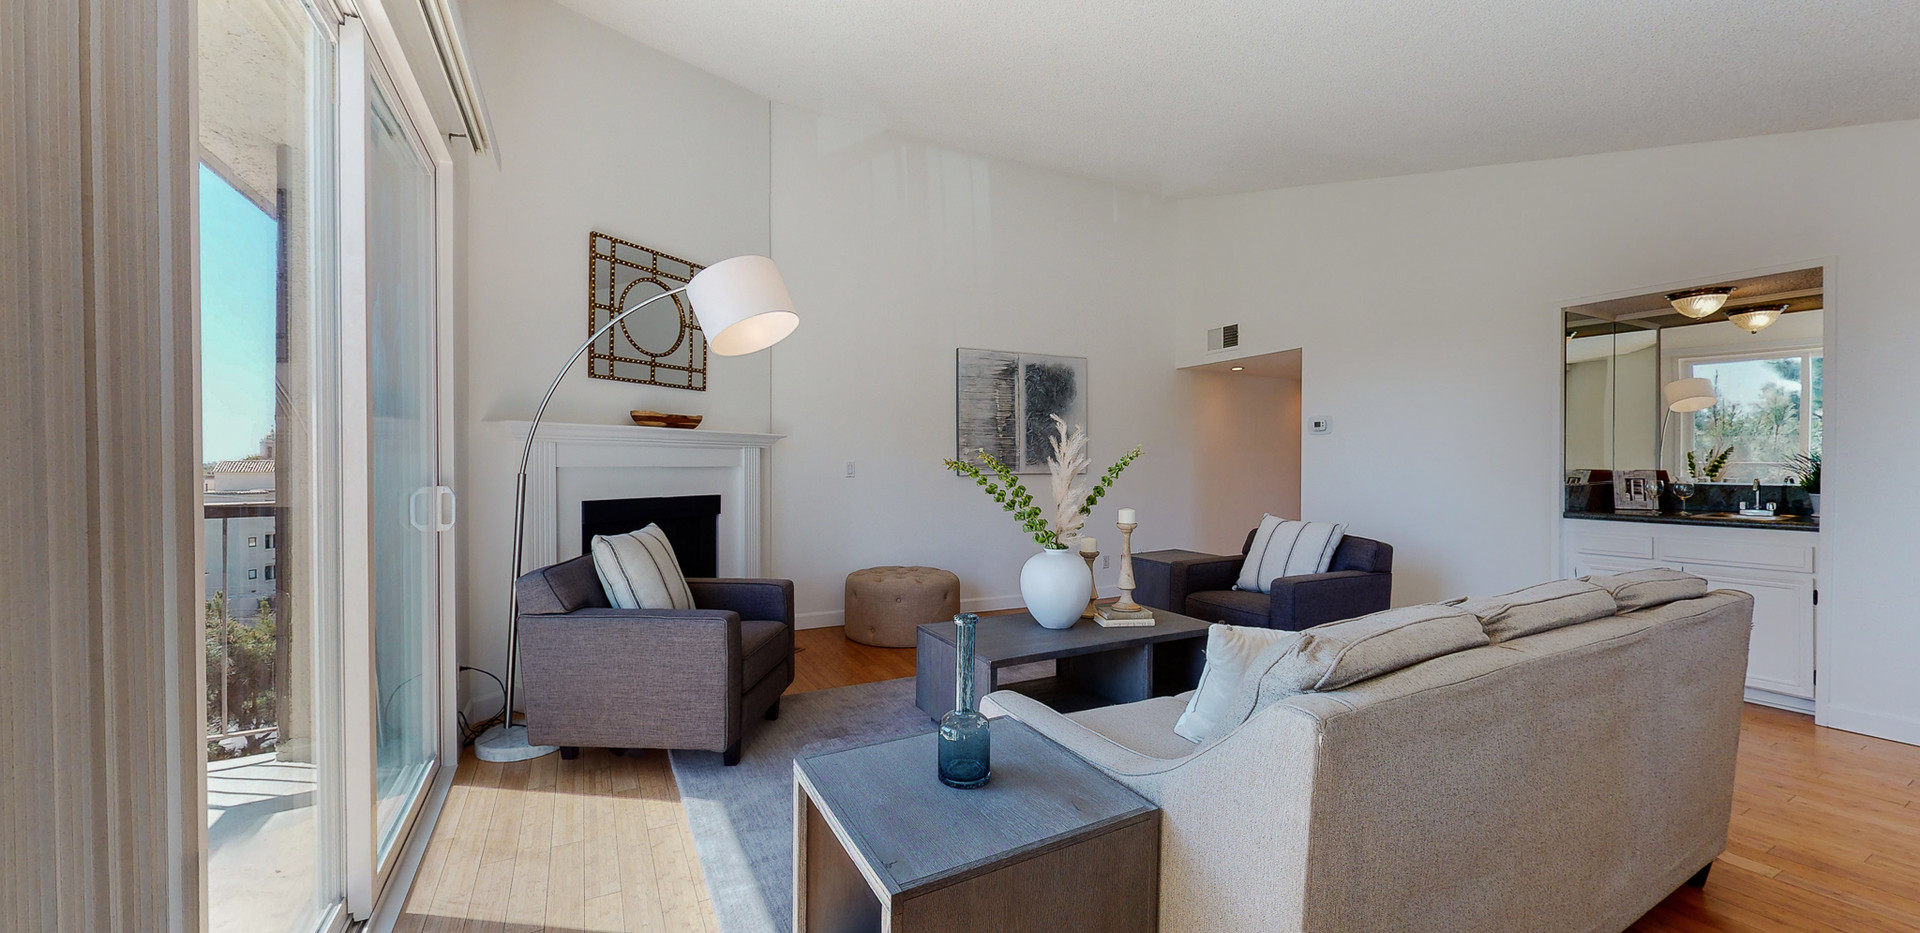 10345 Almayo Ave Unit 307-14.JPG